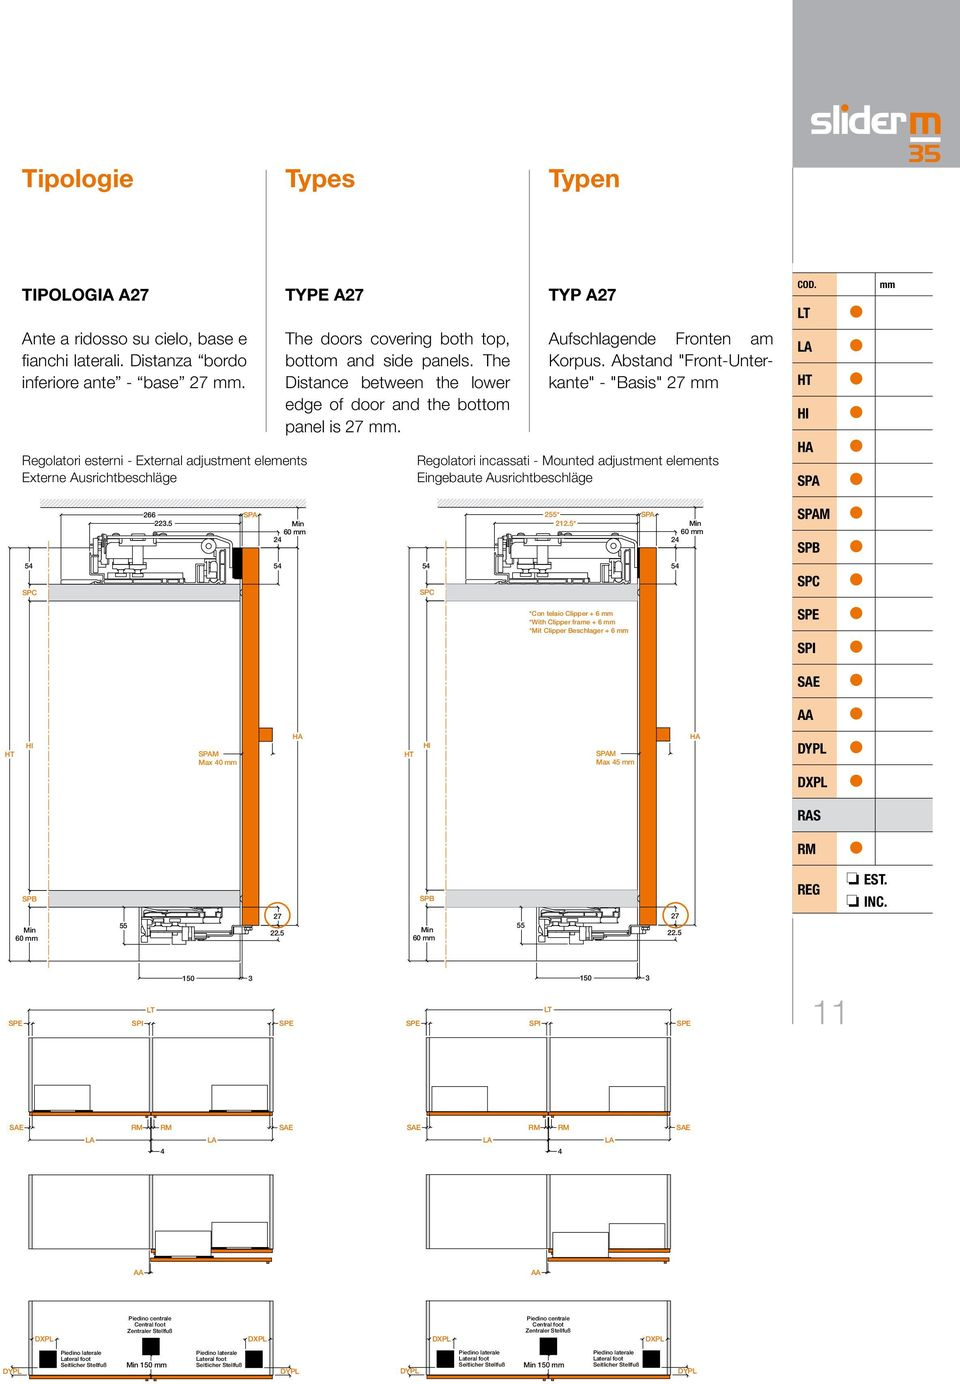 top, bottom and side panels. The Distance between the lower edge of door and the bottom panel is 27 mm.